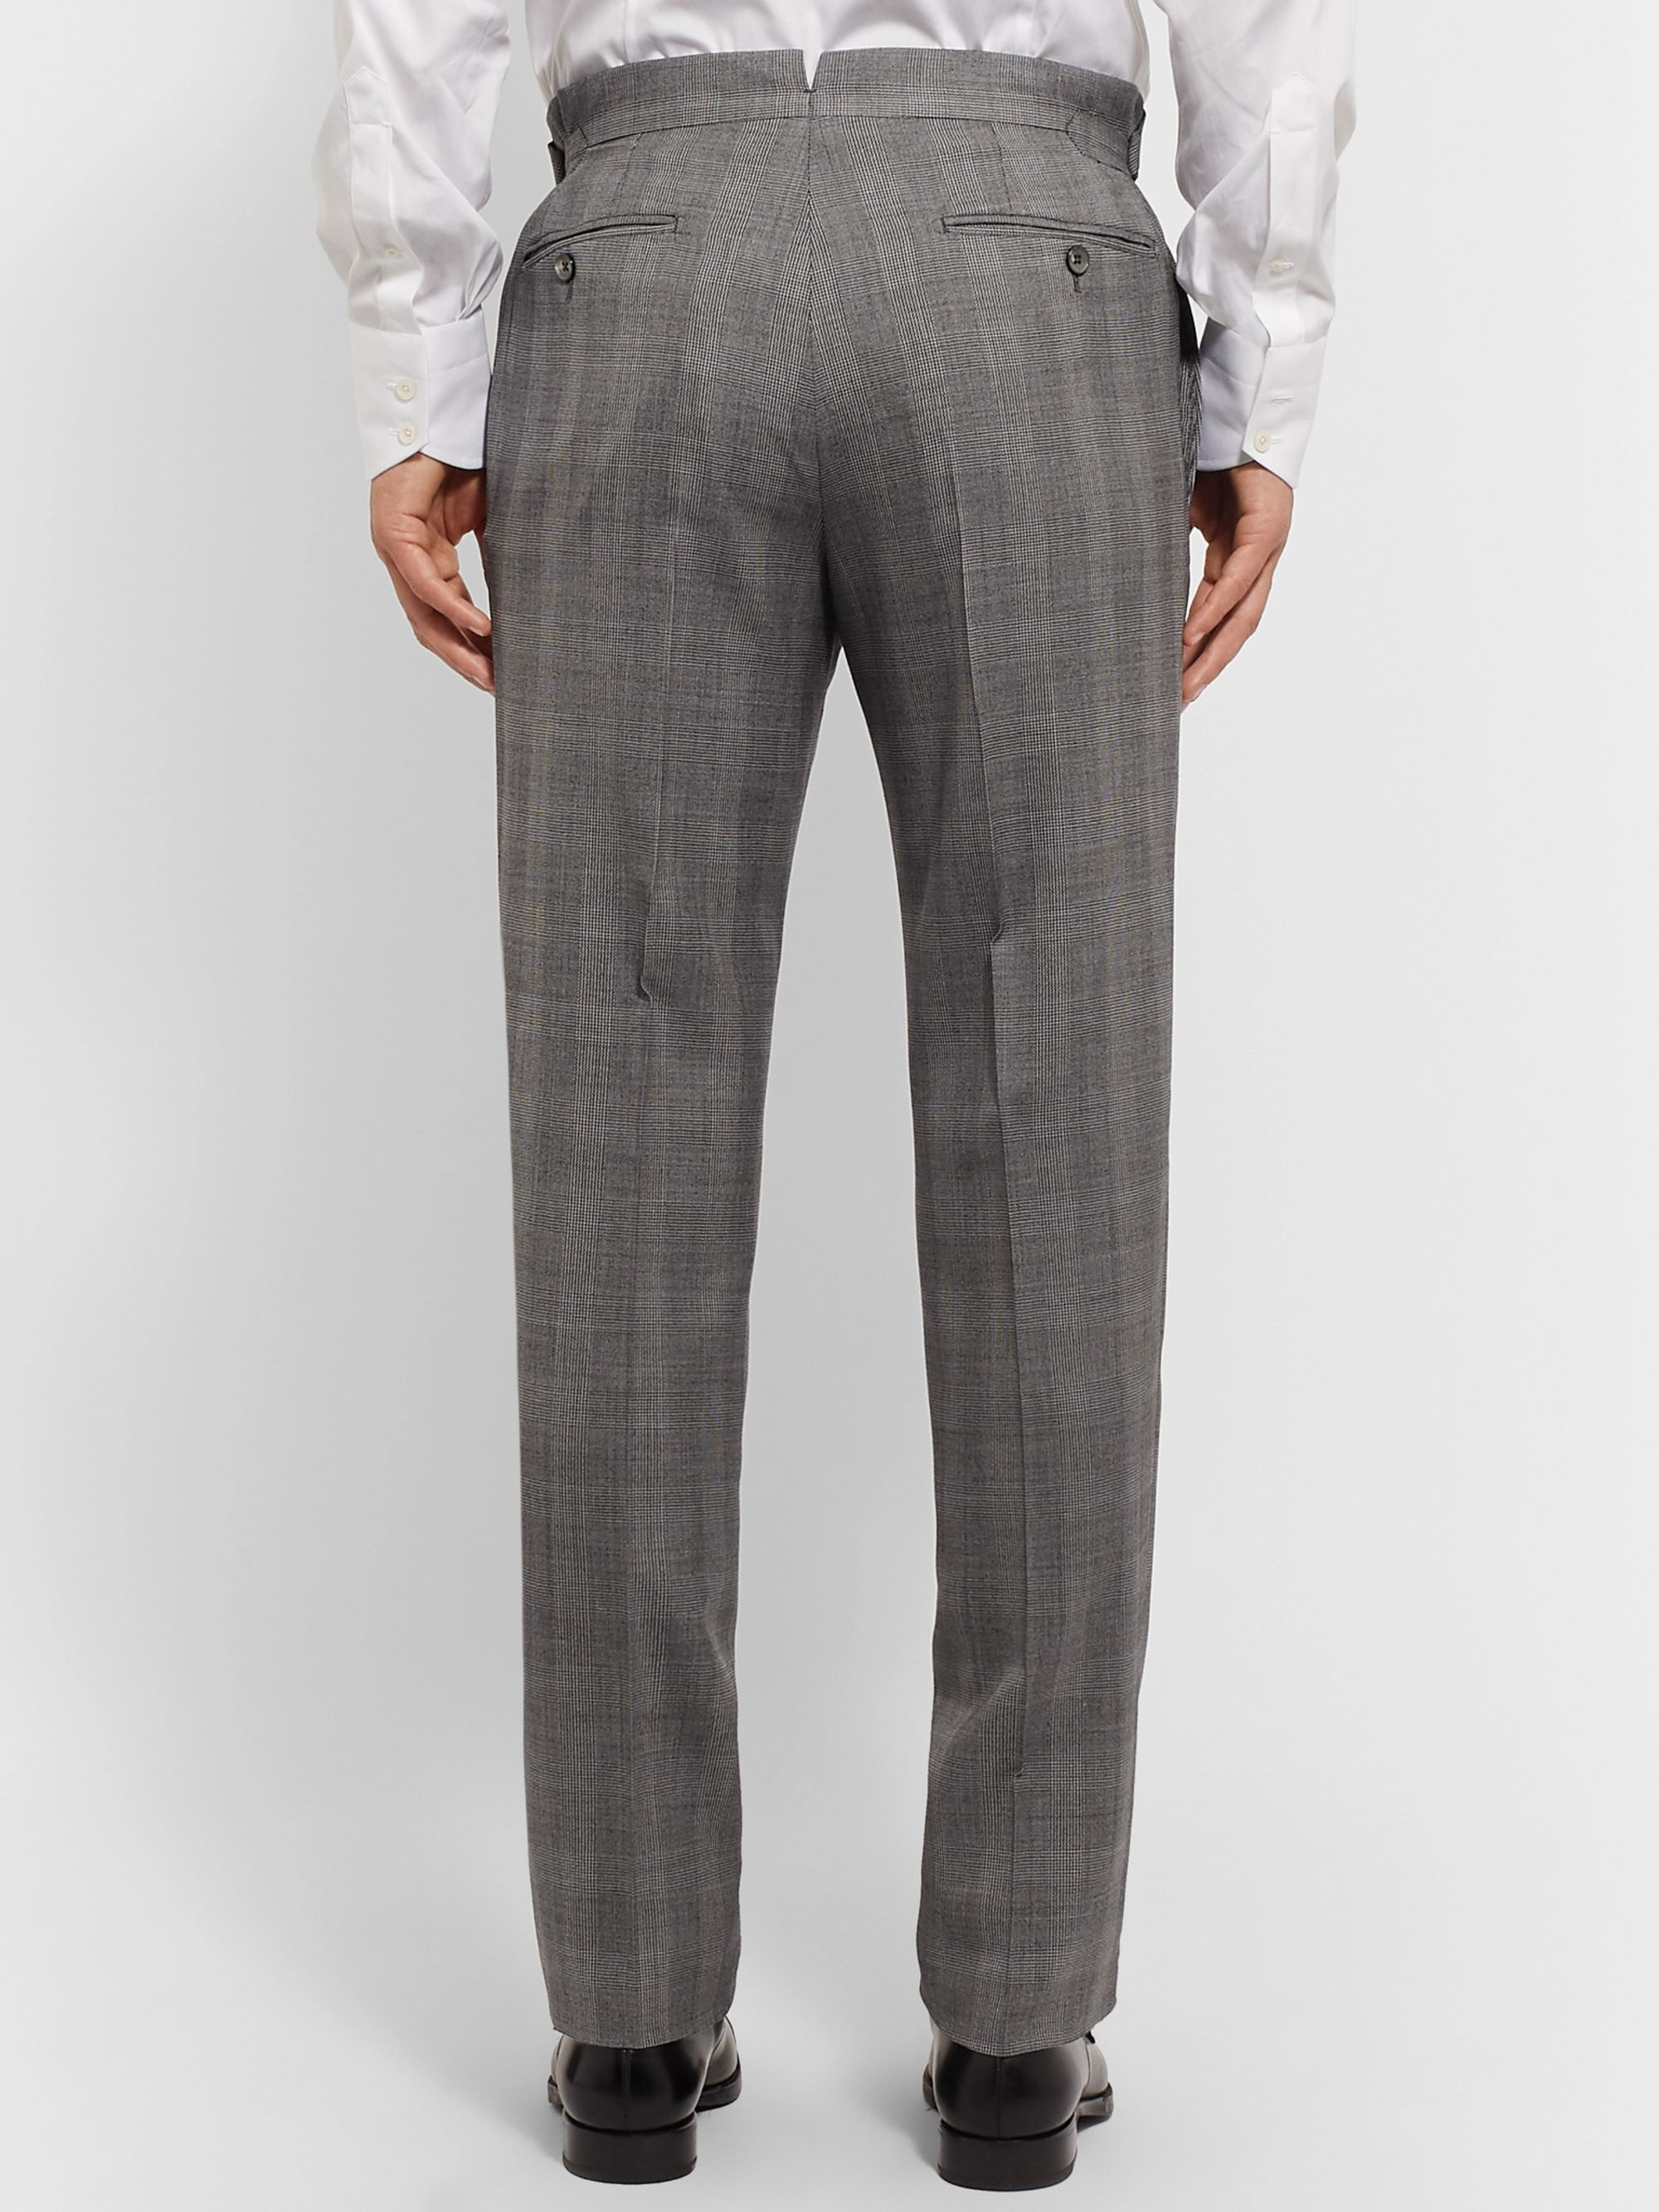 TOM FORD Grey Slim-Fit Prince of Wales Checked Wool and Silk-Blend Suit Trousers